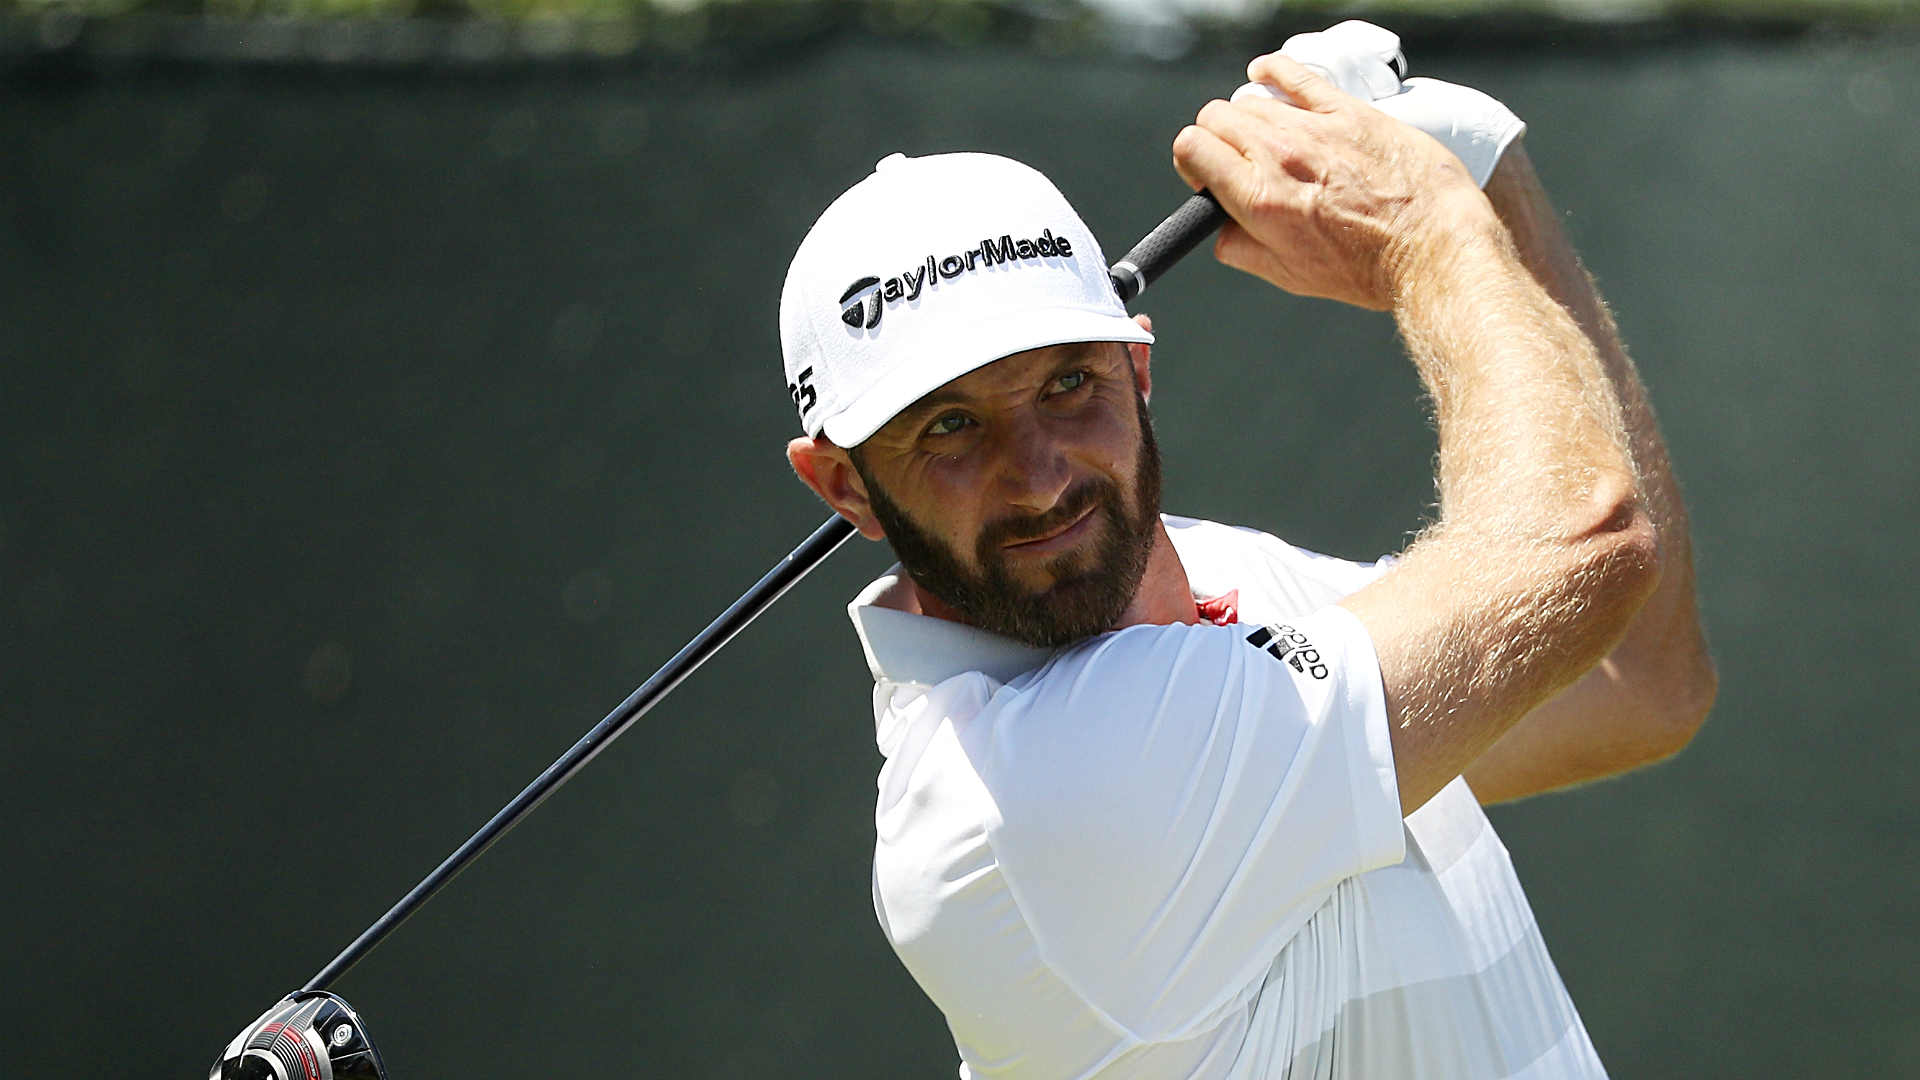 Dustin Johnson sends classy tweet after US Open